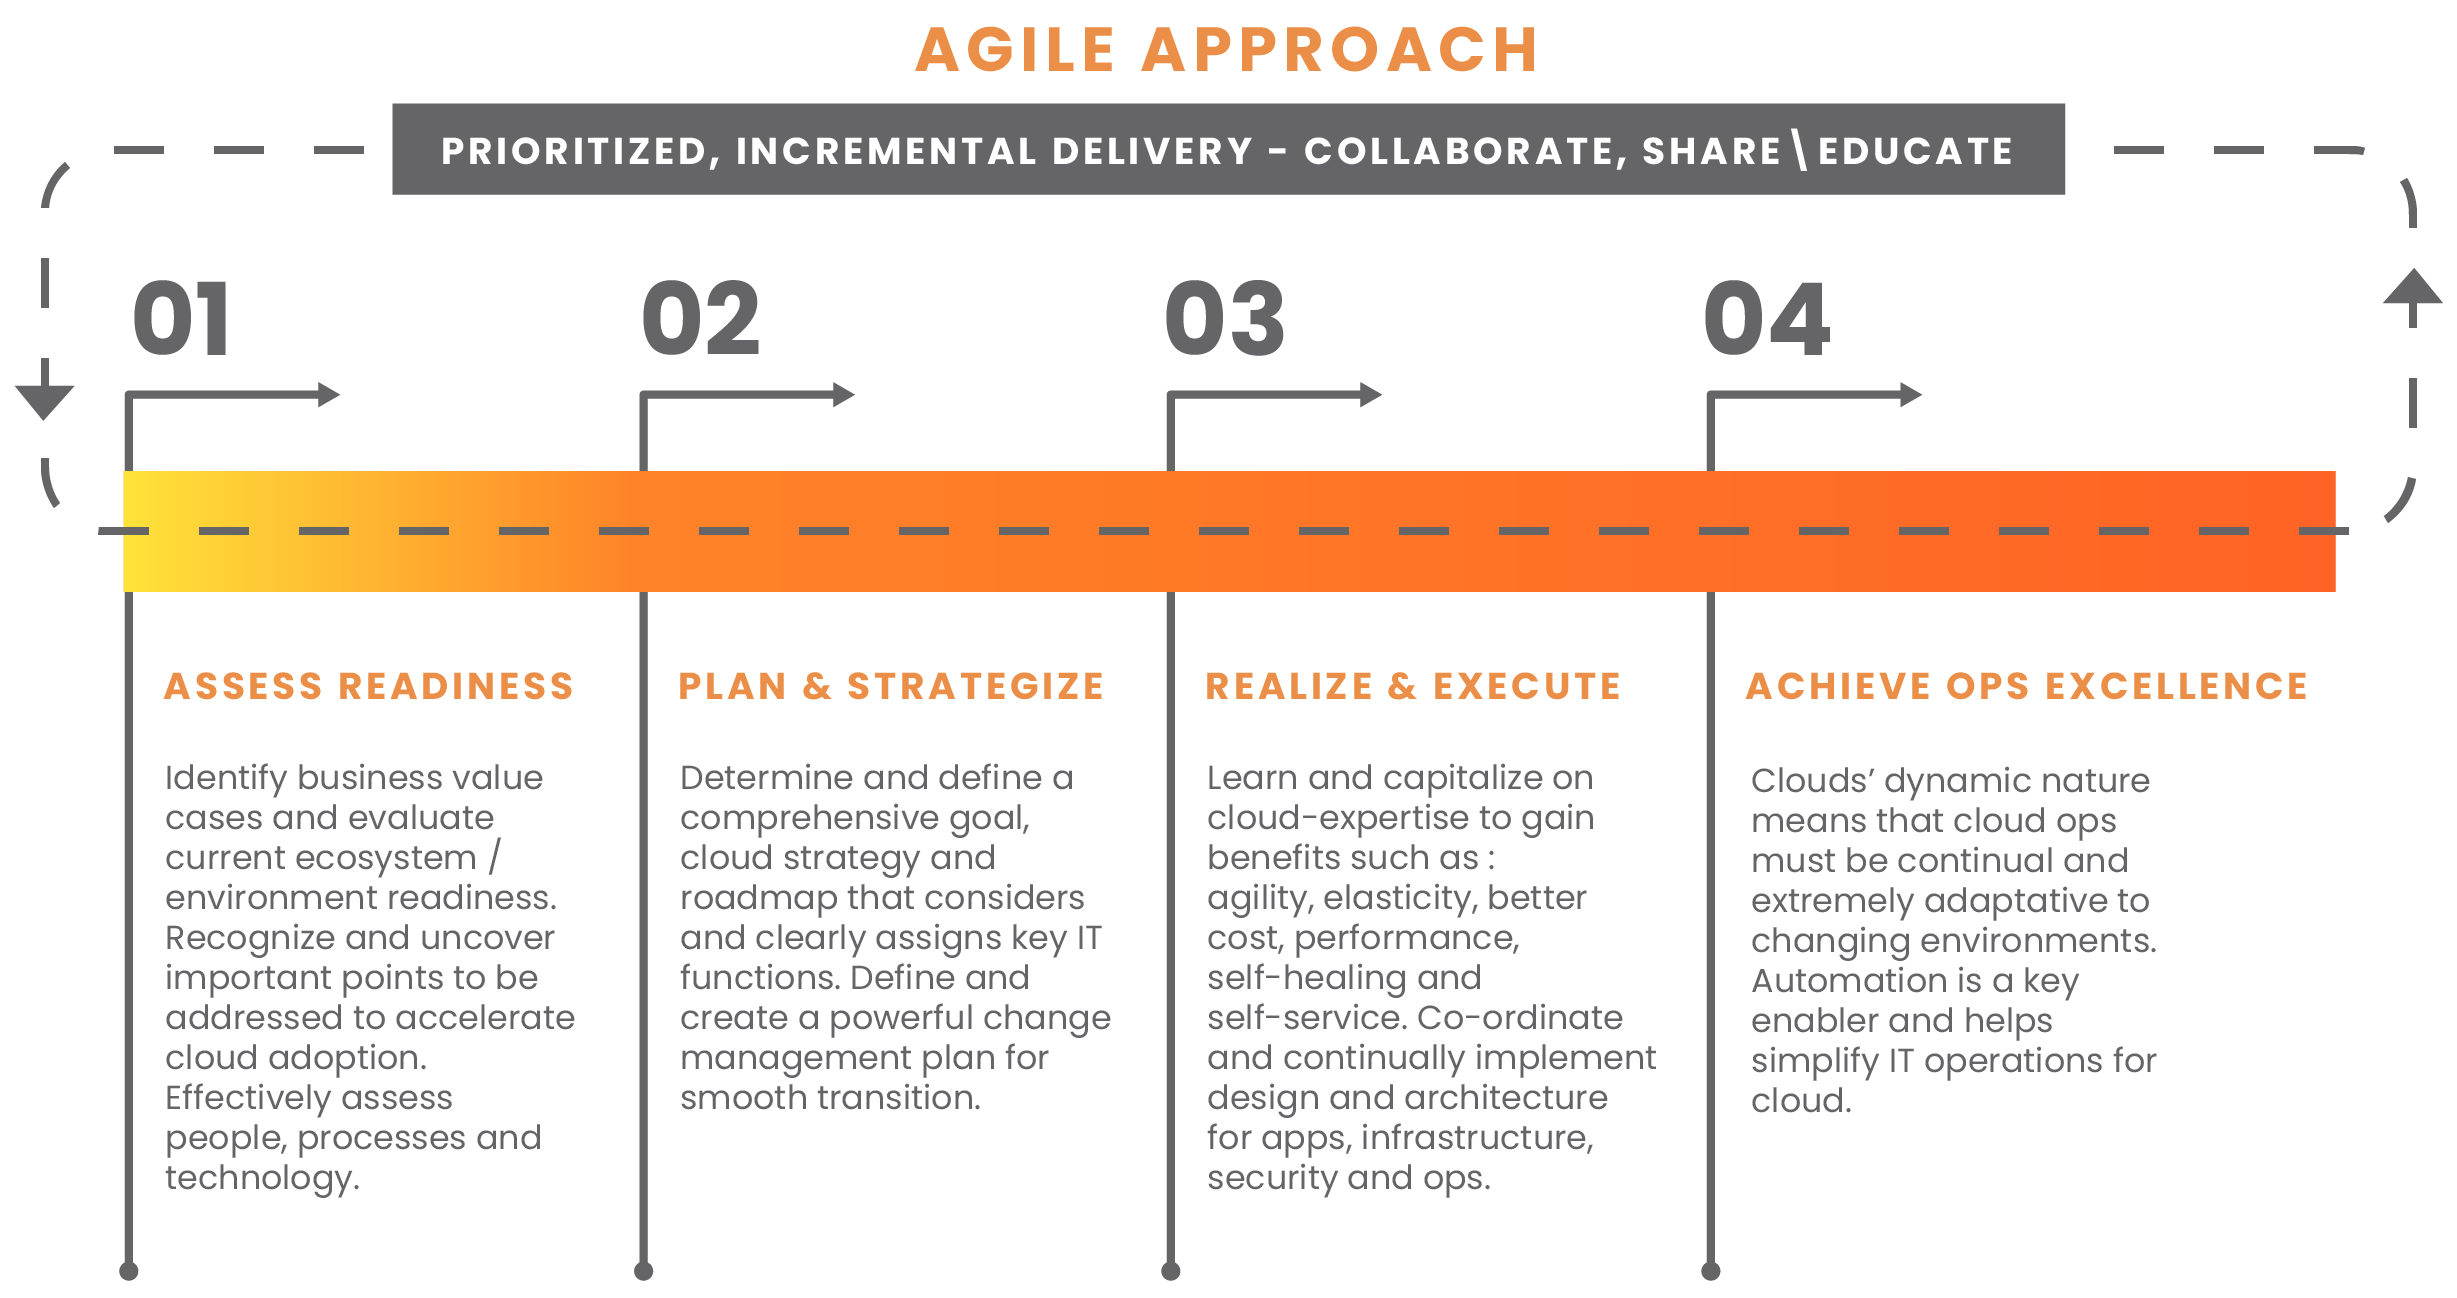 Agile Approach to Cloud Adoption